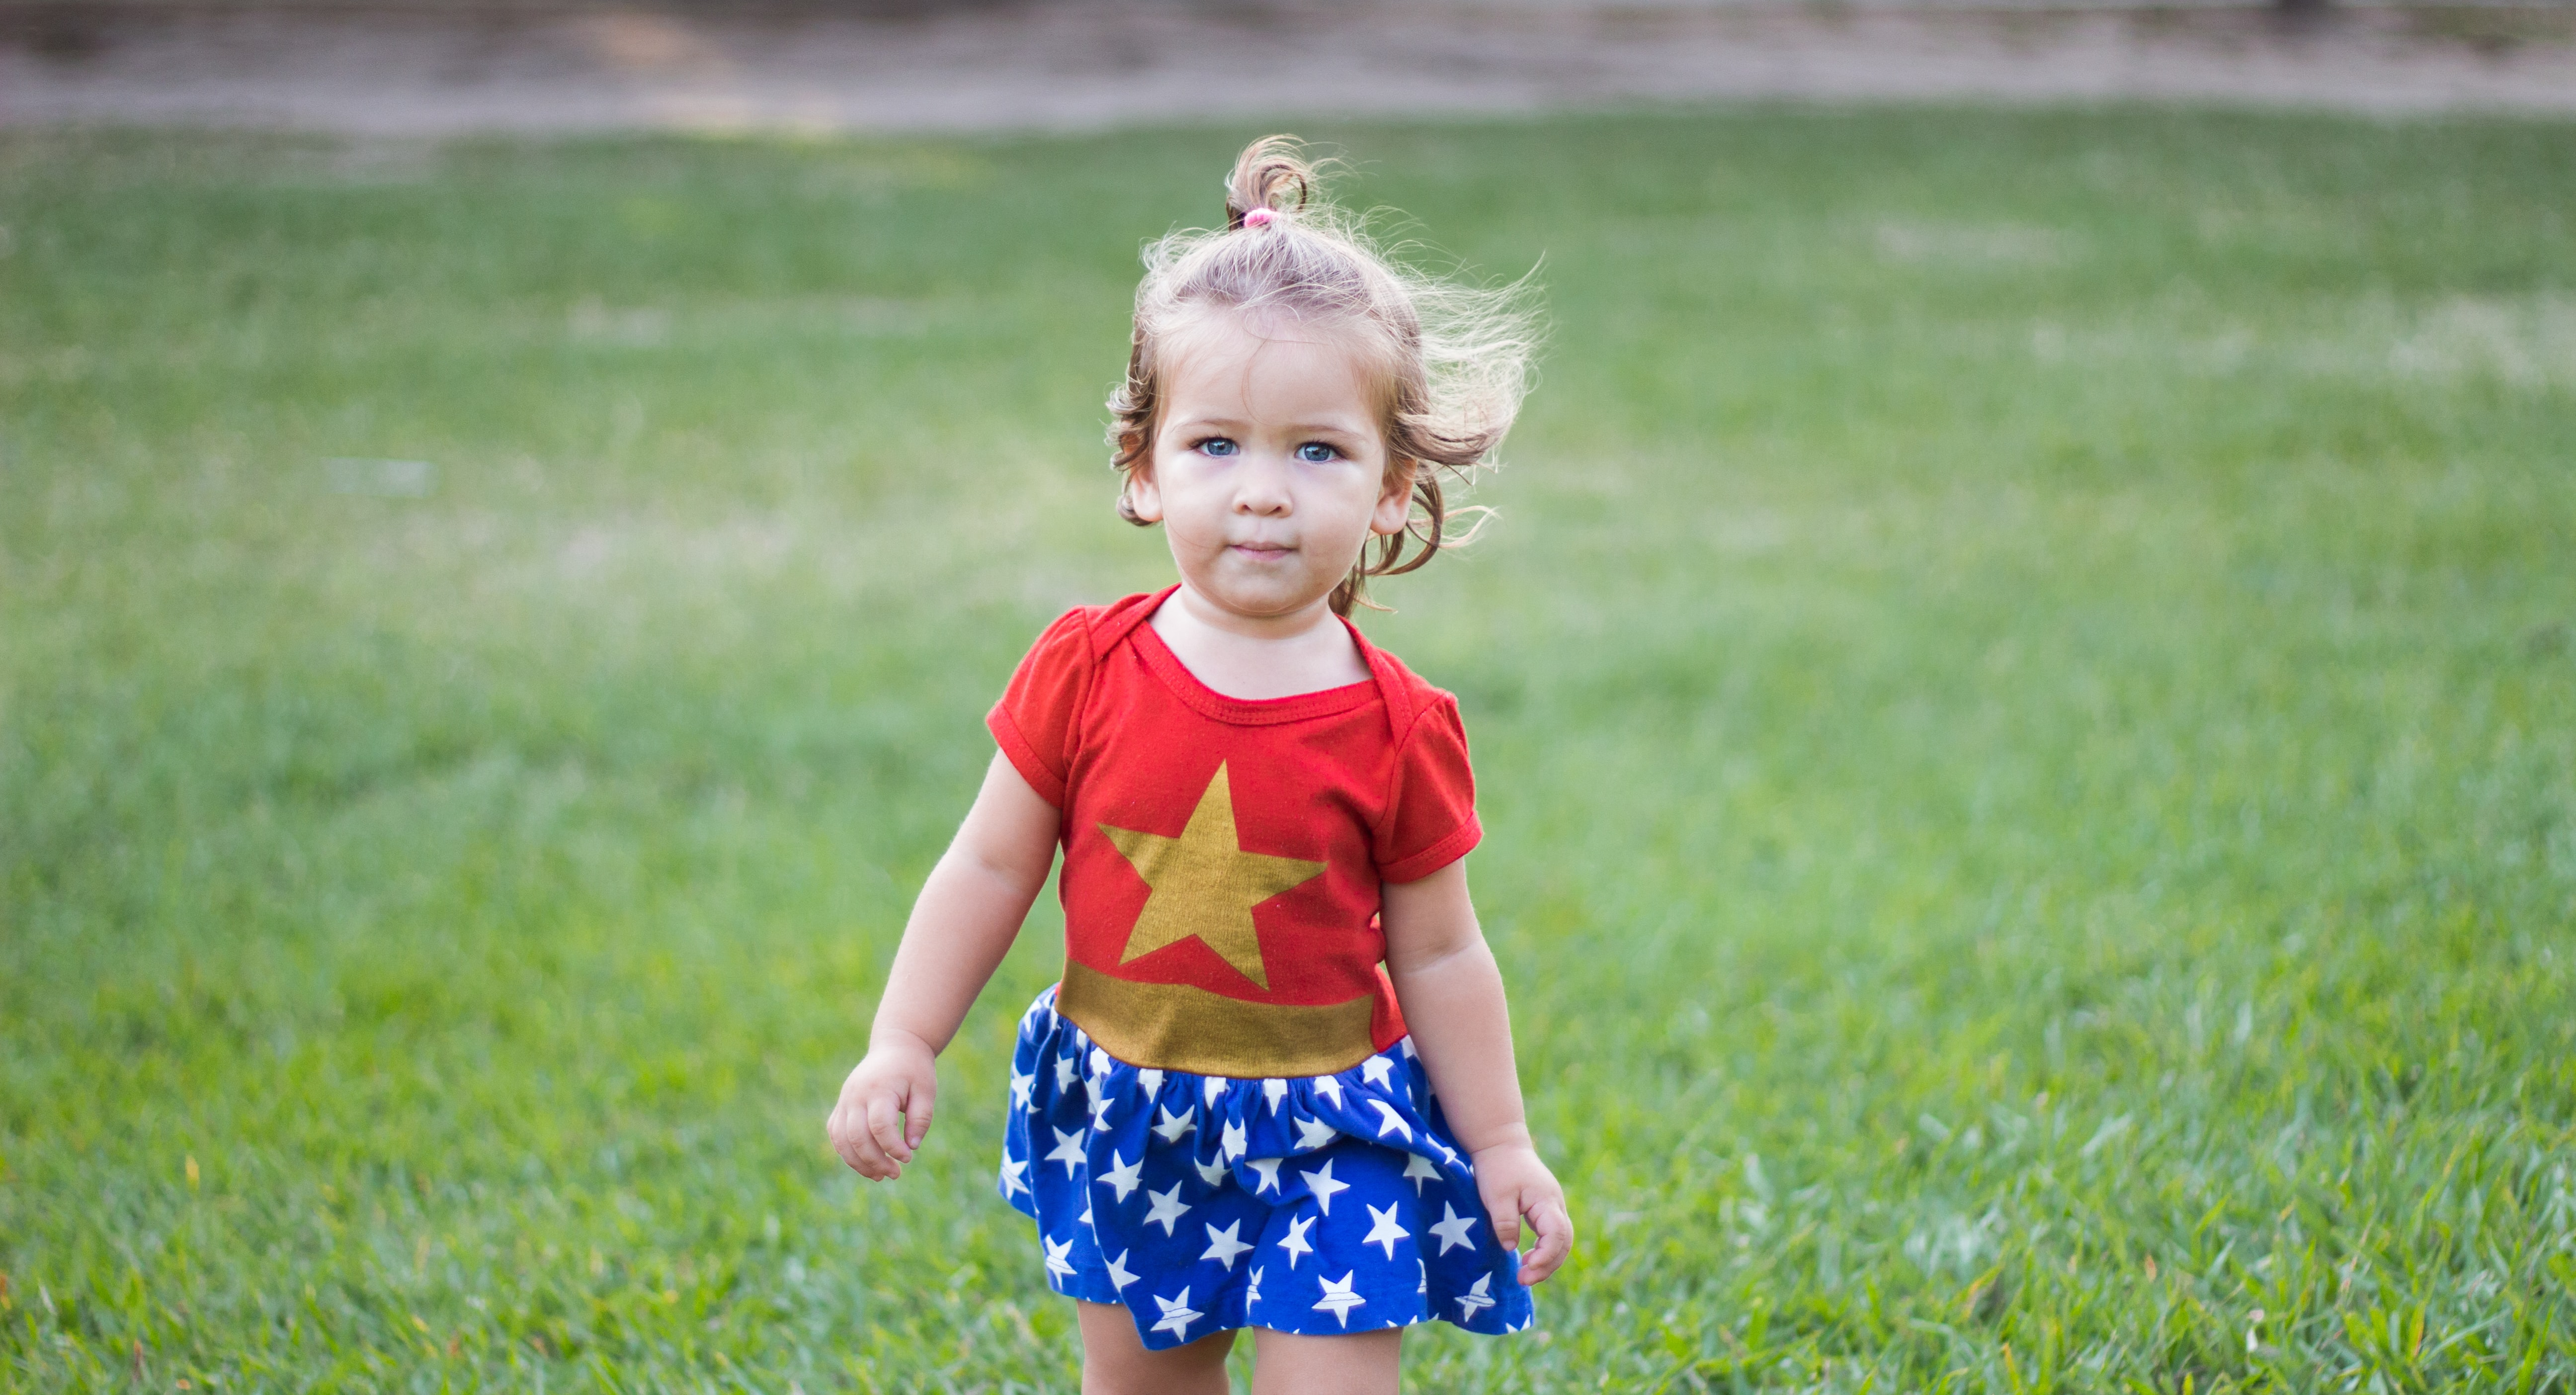 A little girl in a Wonder Woman outfit, with a big gold star. Photo by Gabriela Braga on Unsplash.